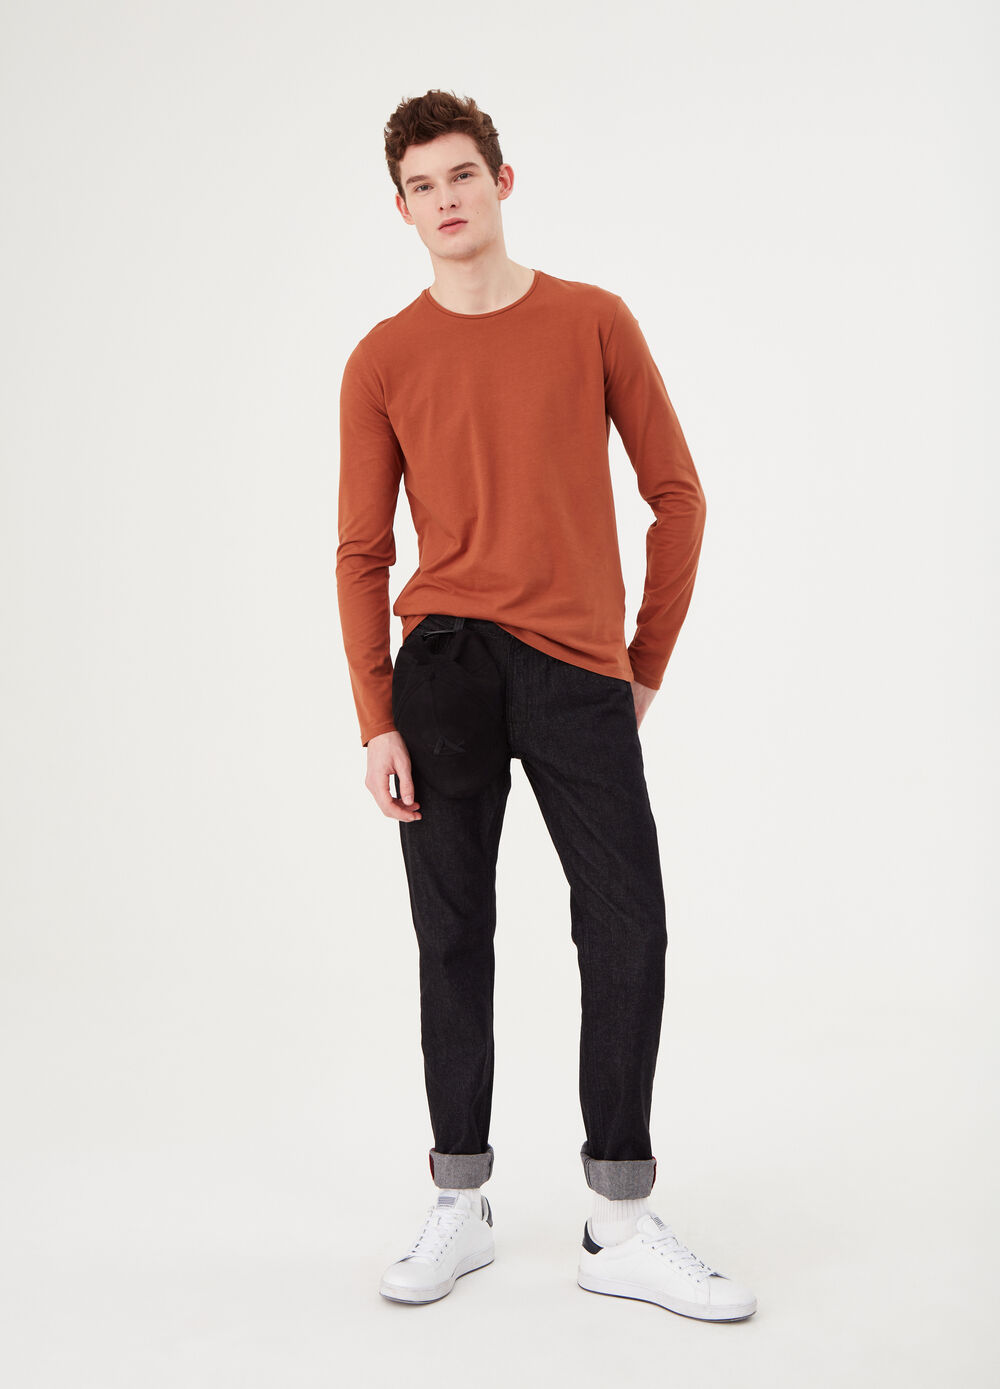 Long-sleeved jersey T-shirt with double neck